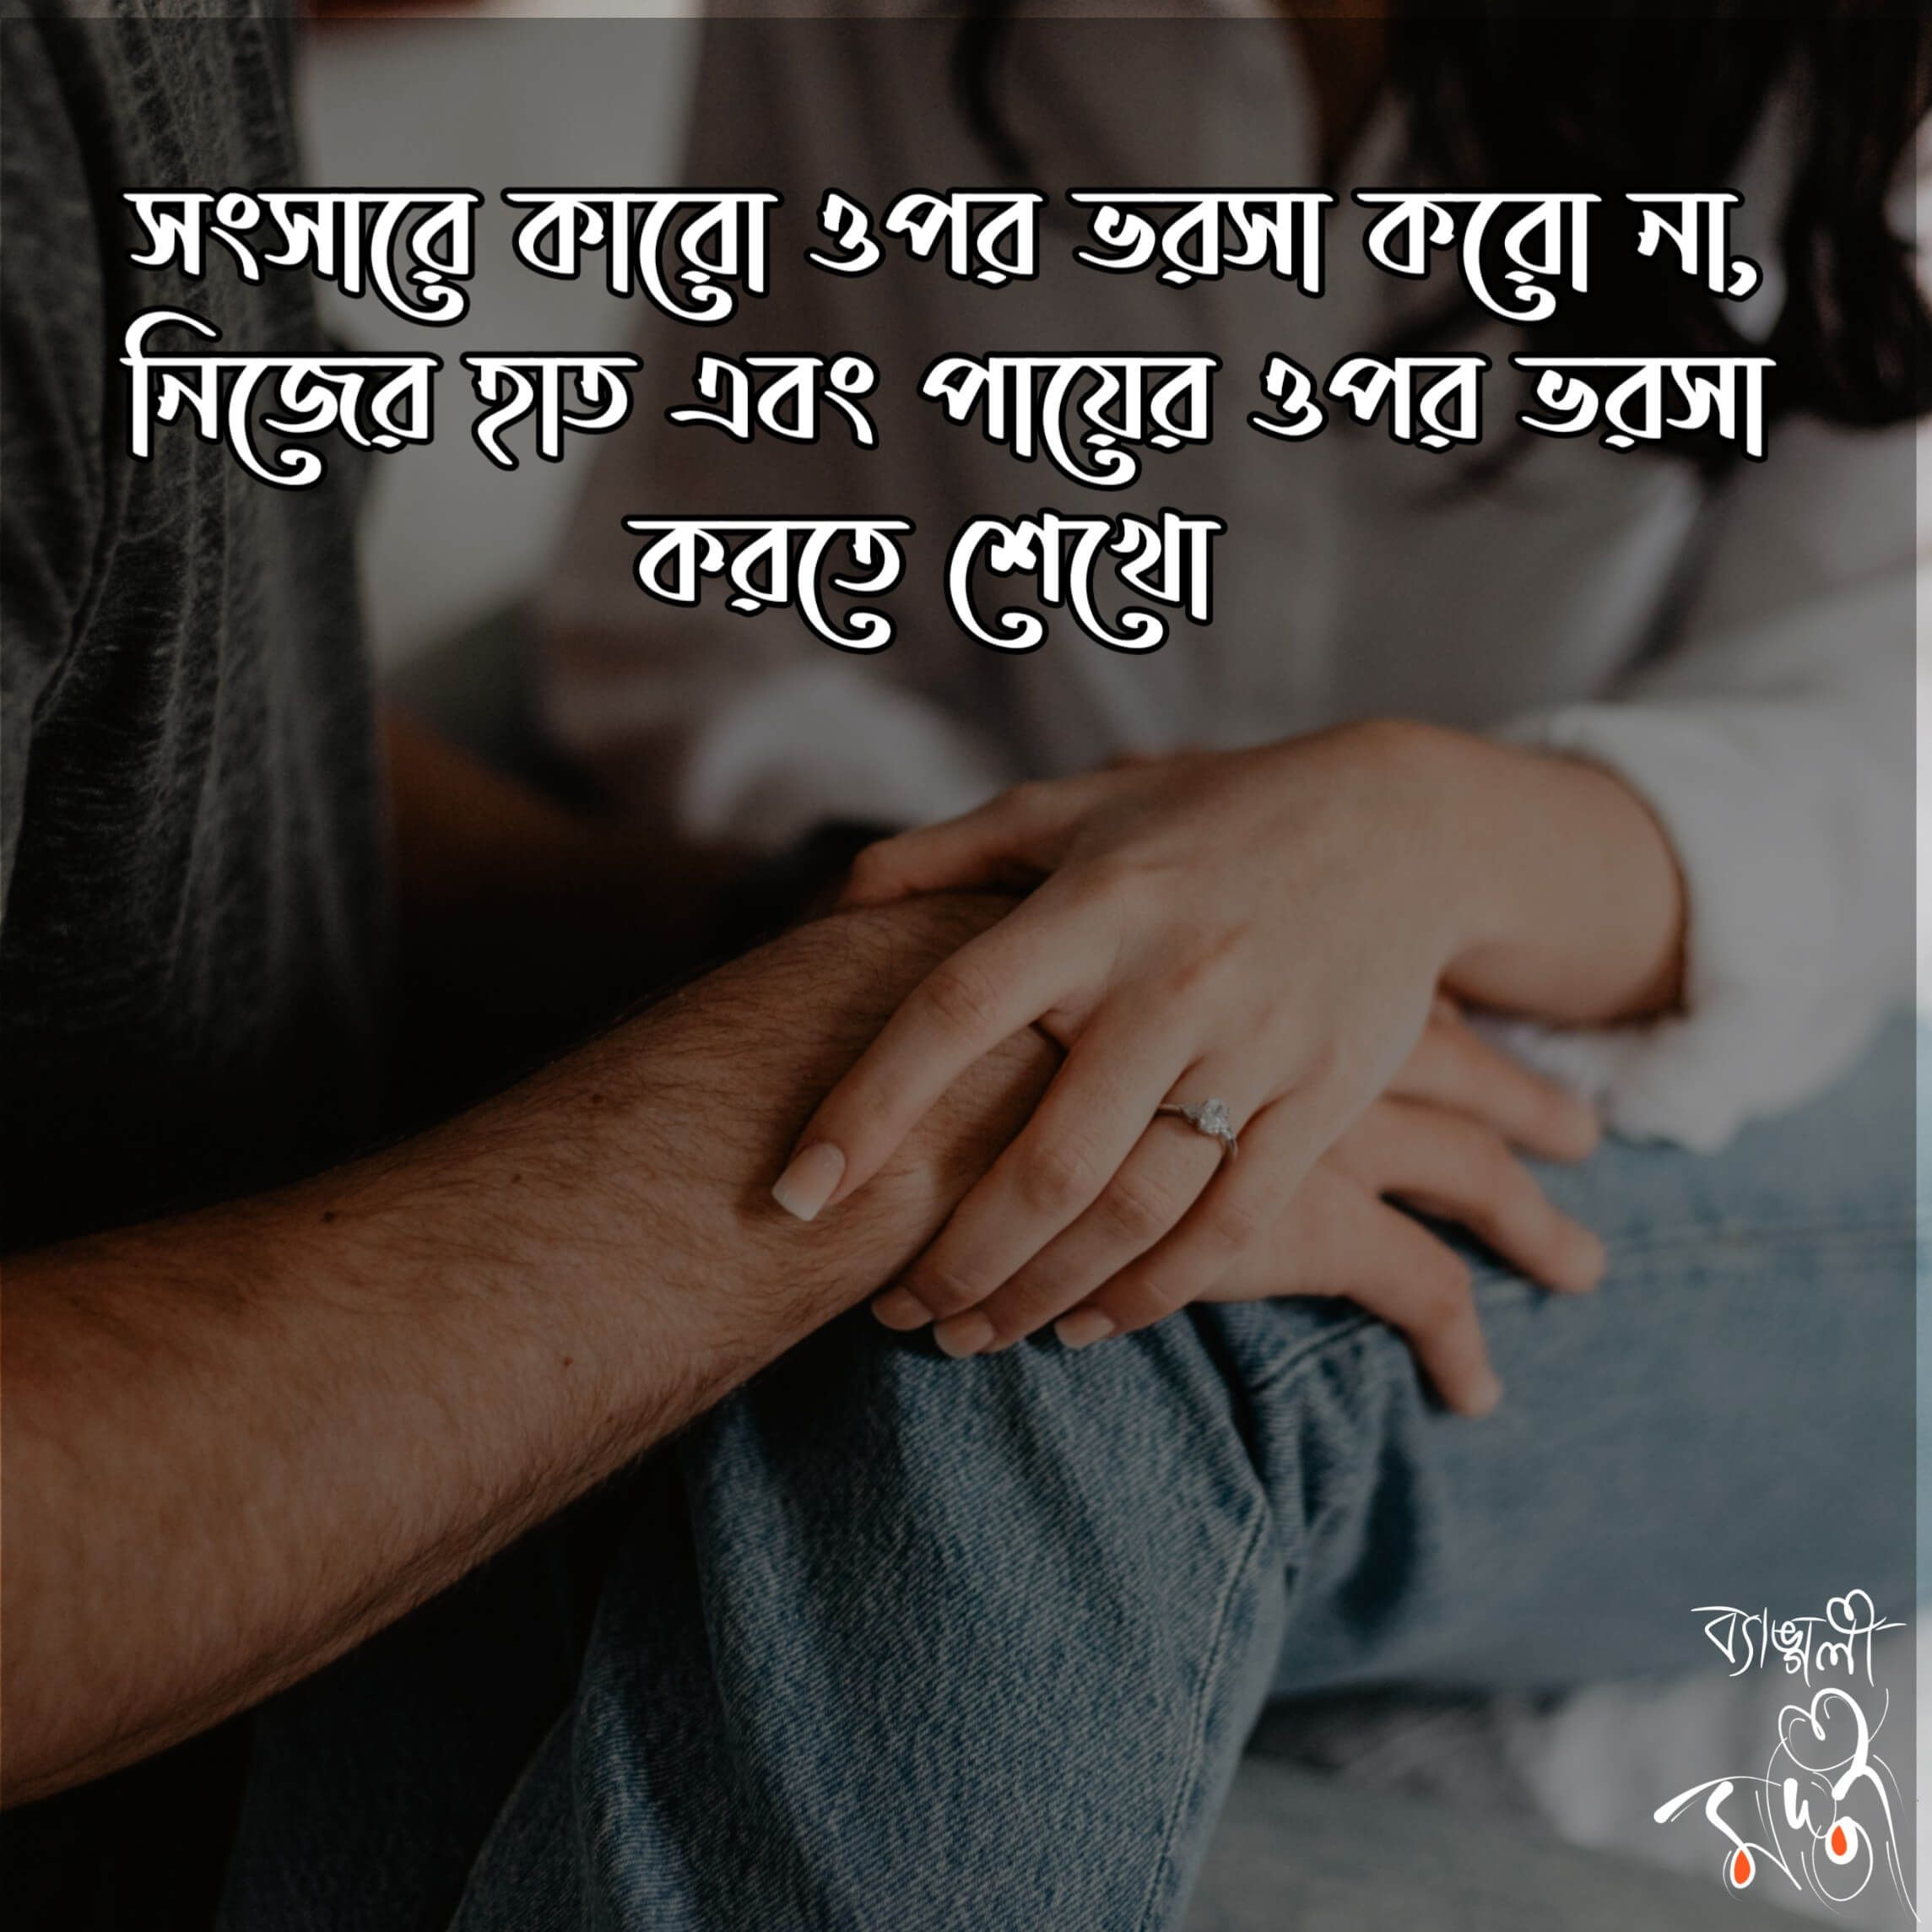 Bengali life quotes in 5  Life quotes, Quotes, Life